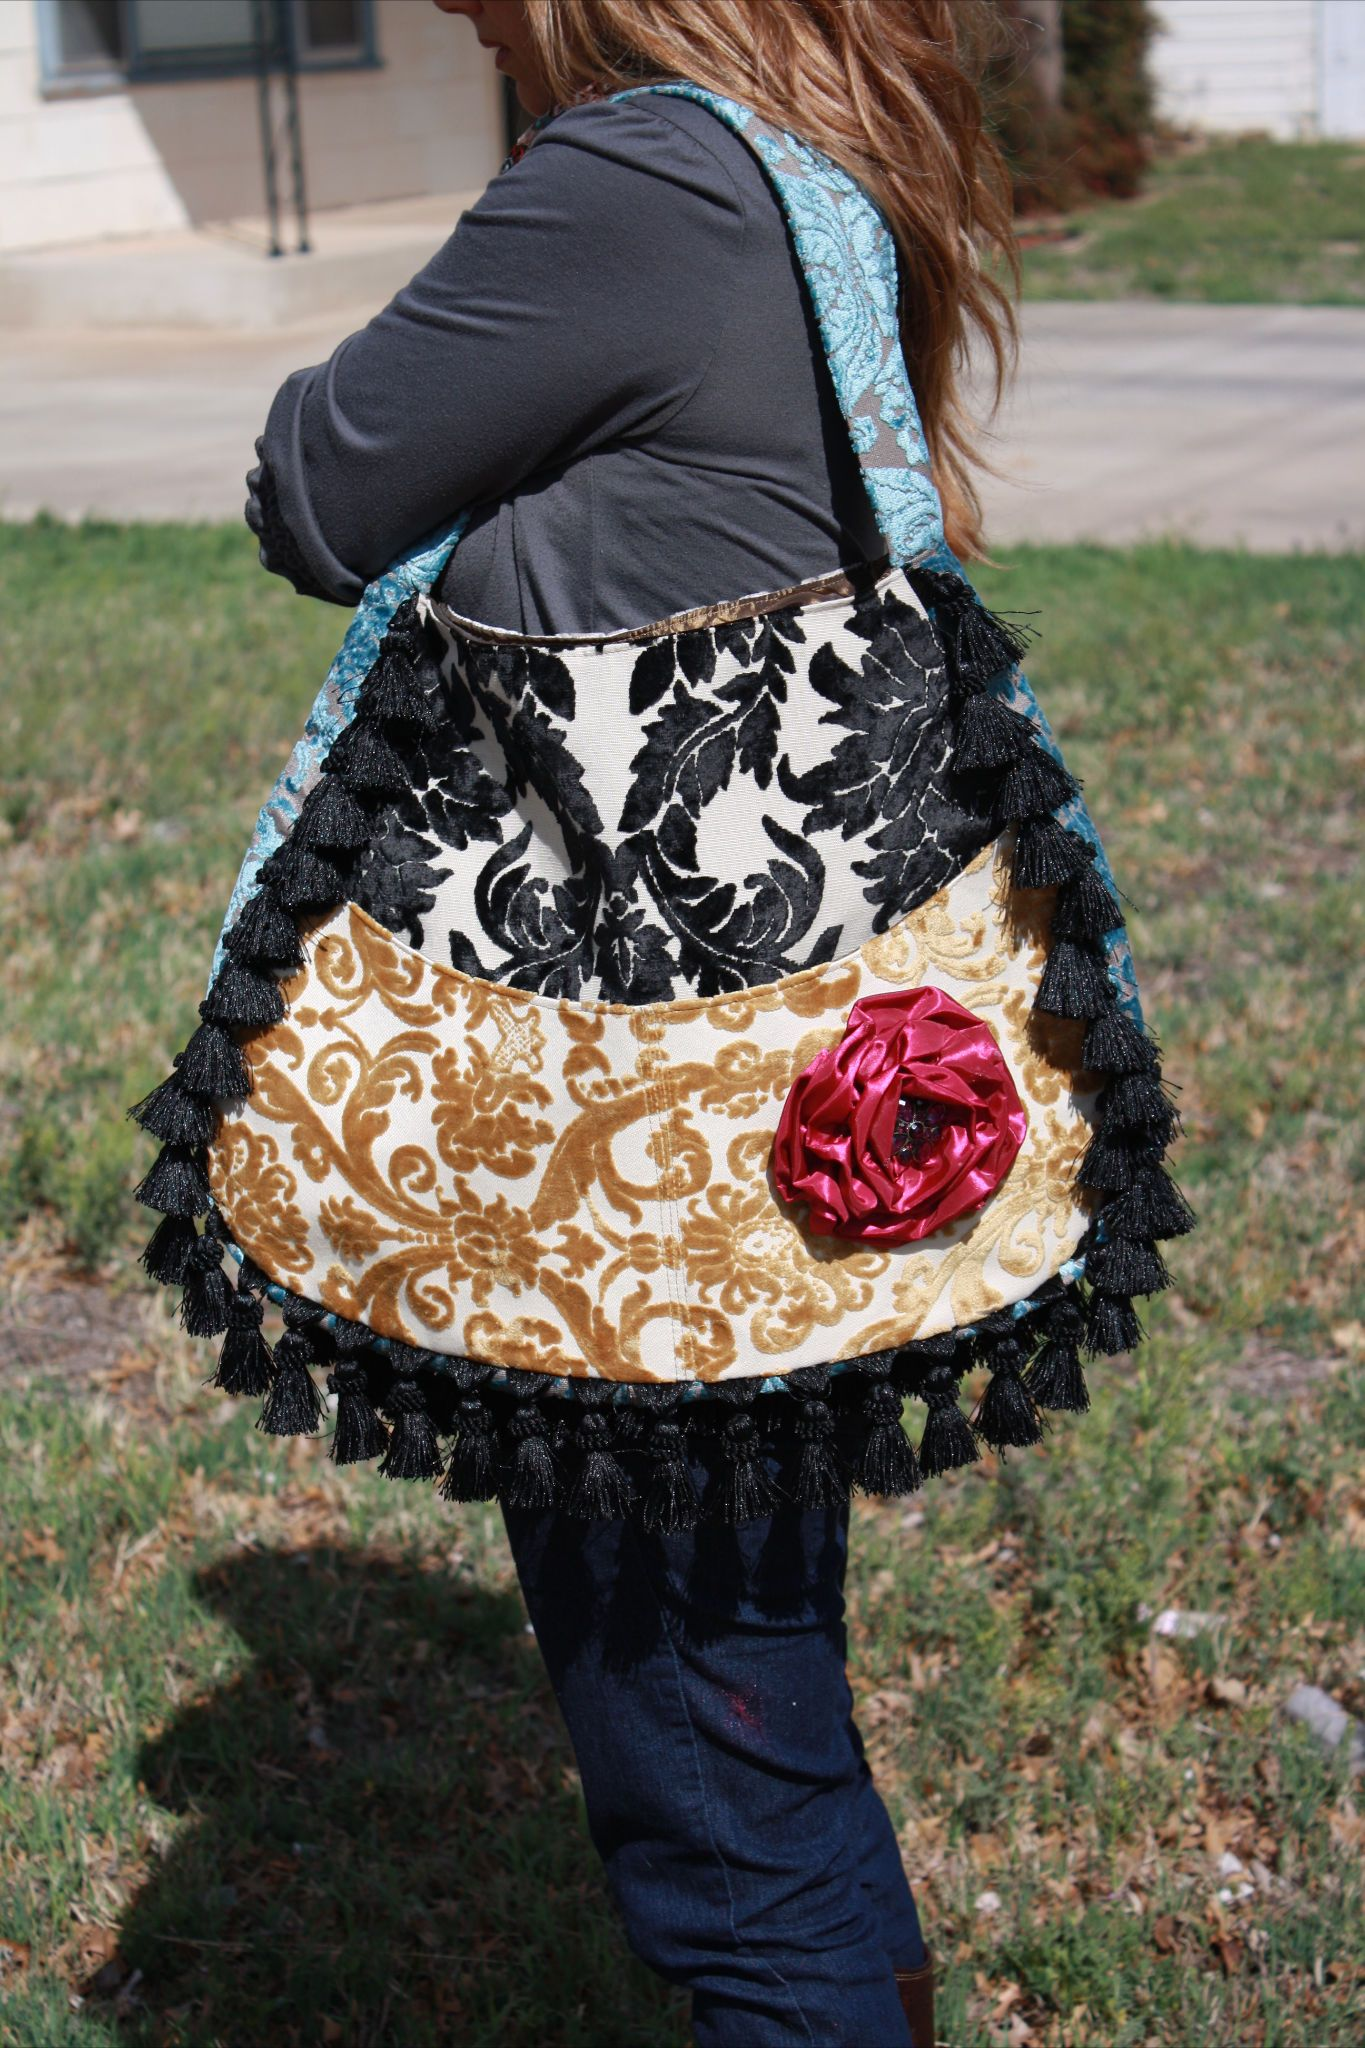 Pin By Sadie Alderson On My Closet Is Incomplete Fashion Bags